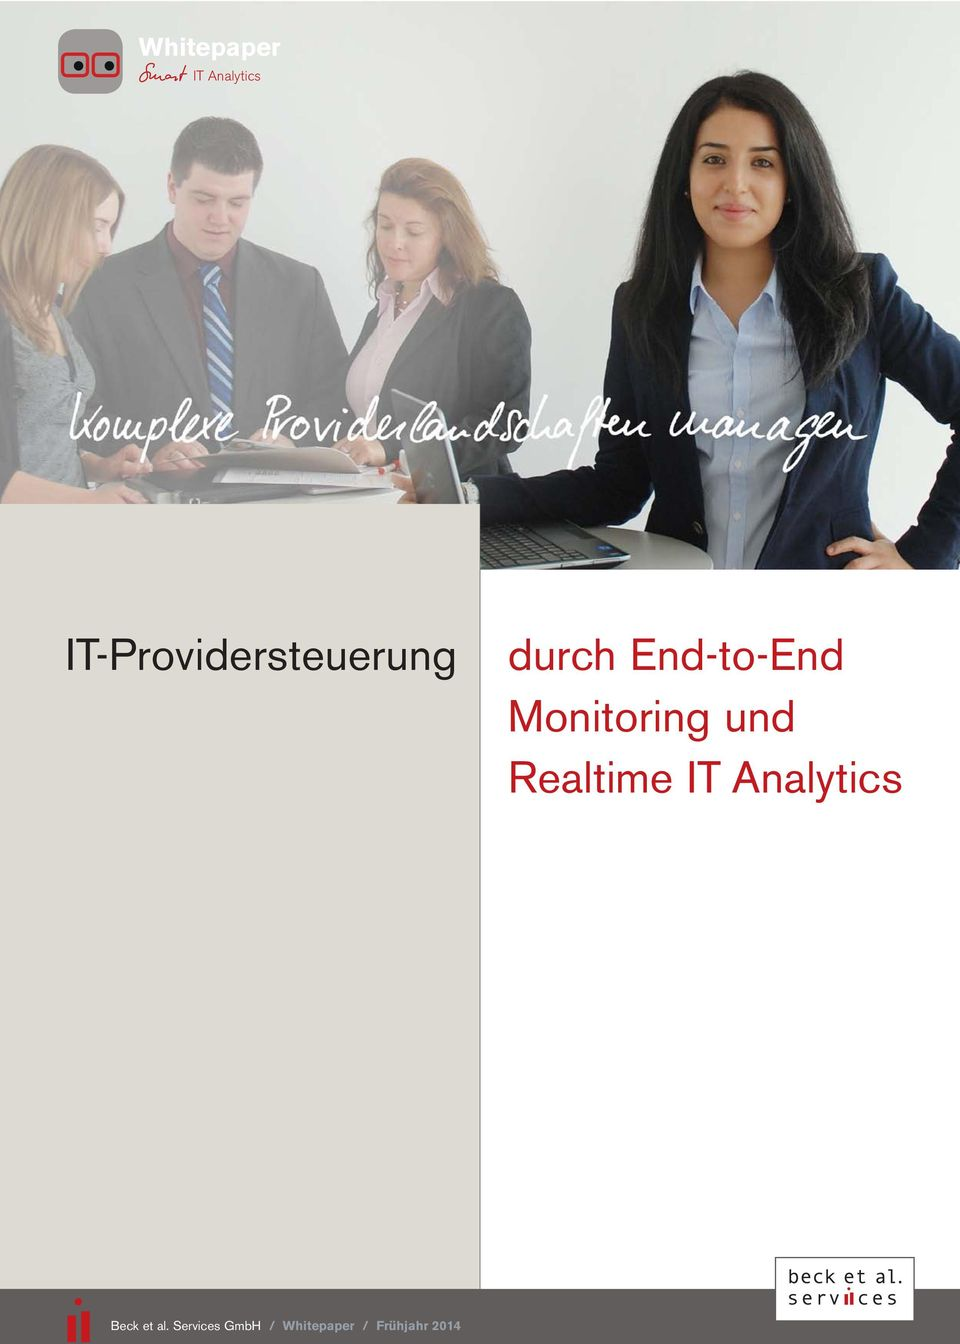 Monitoring und Realtime IT Analytics